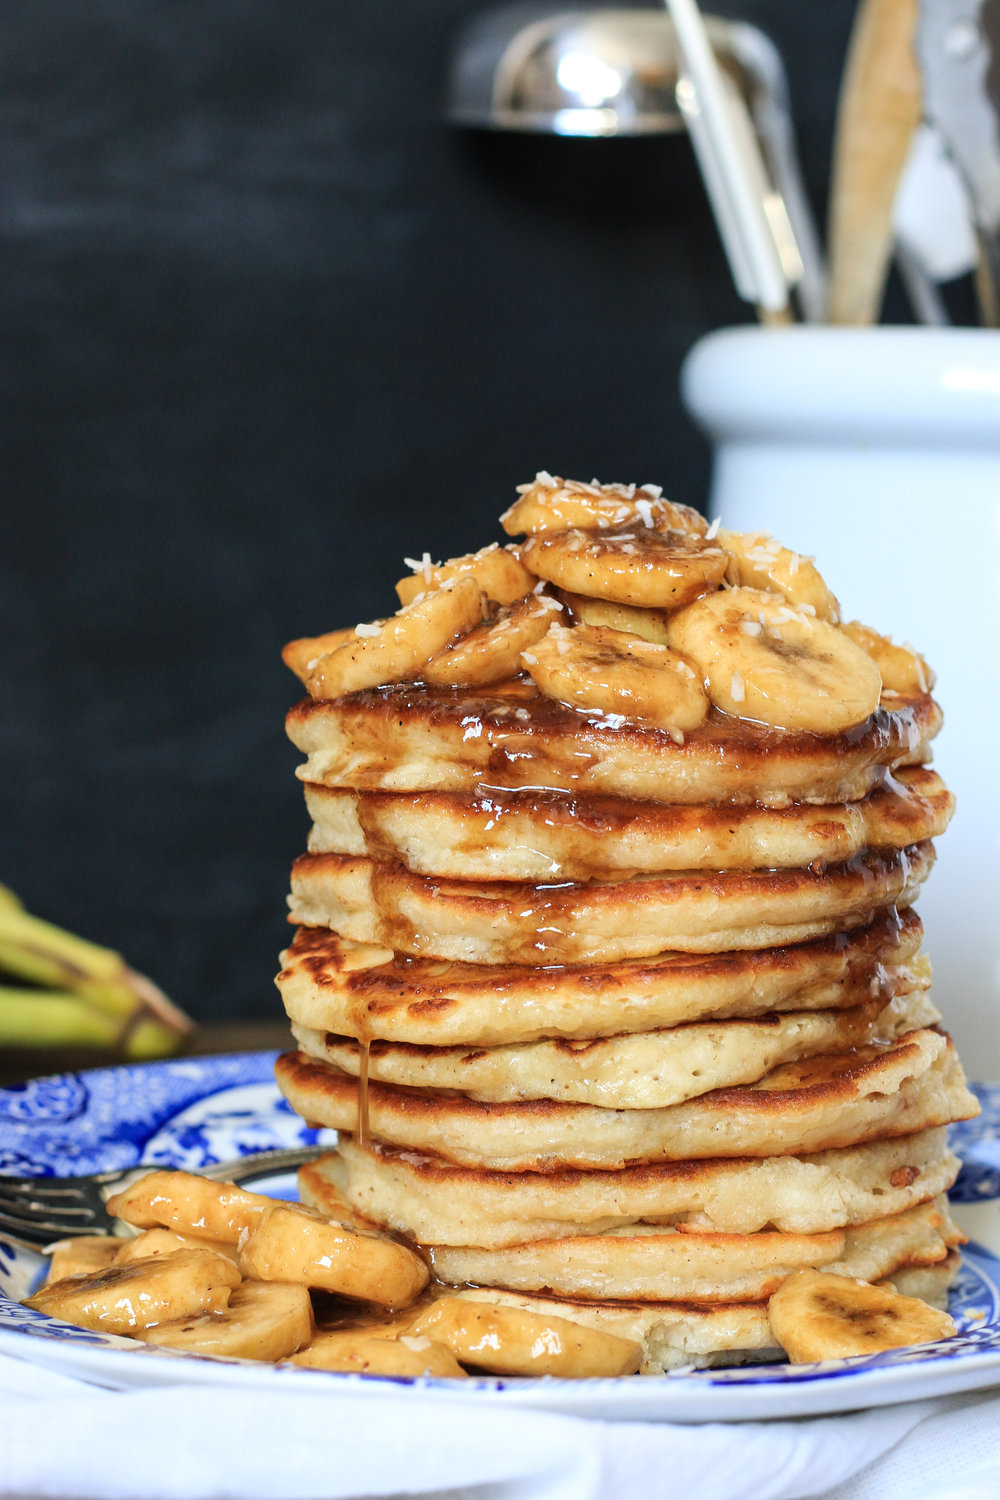 Fluffy Coconut Pancakes with Bananas Foster